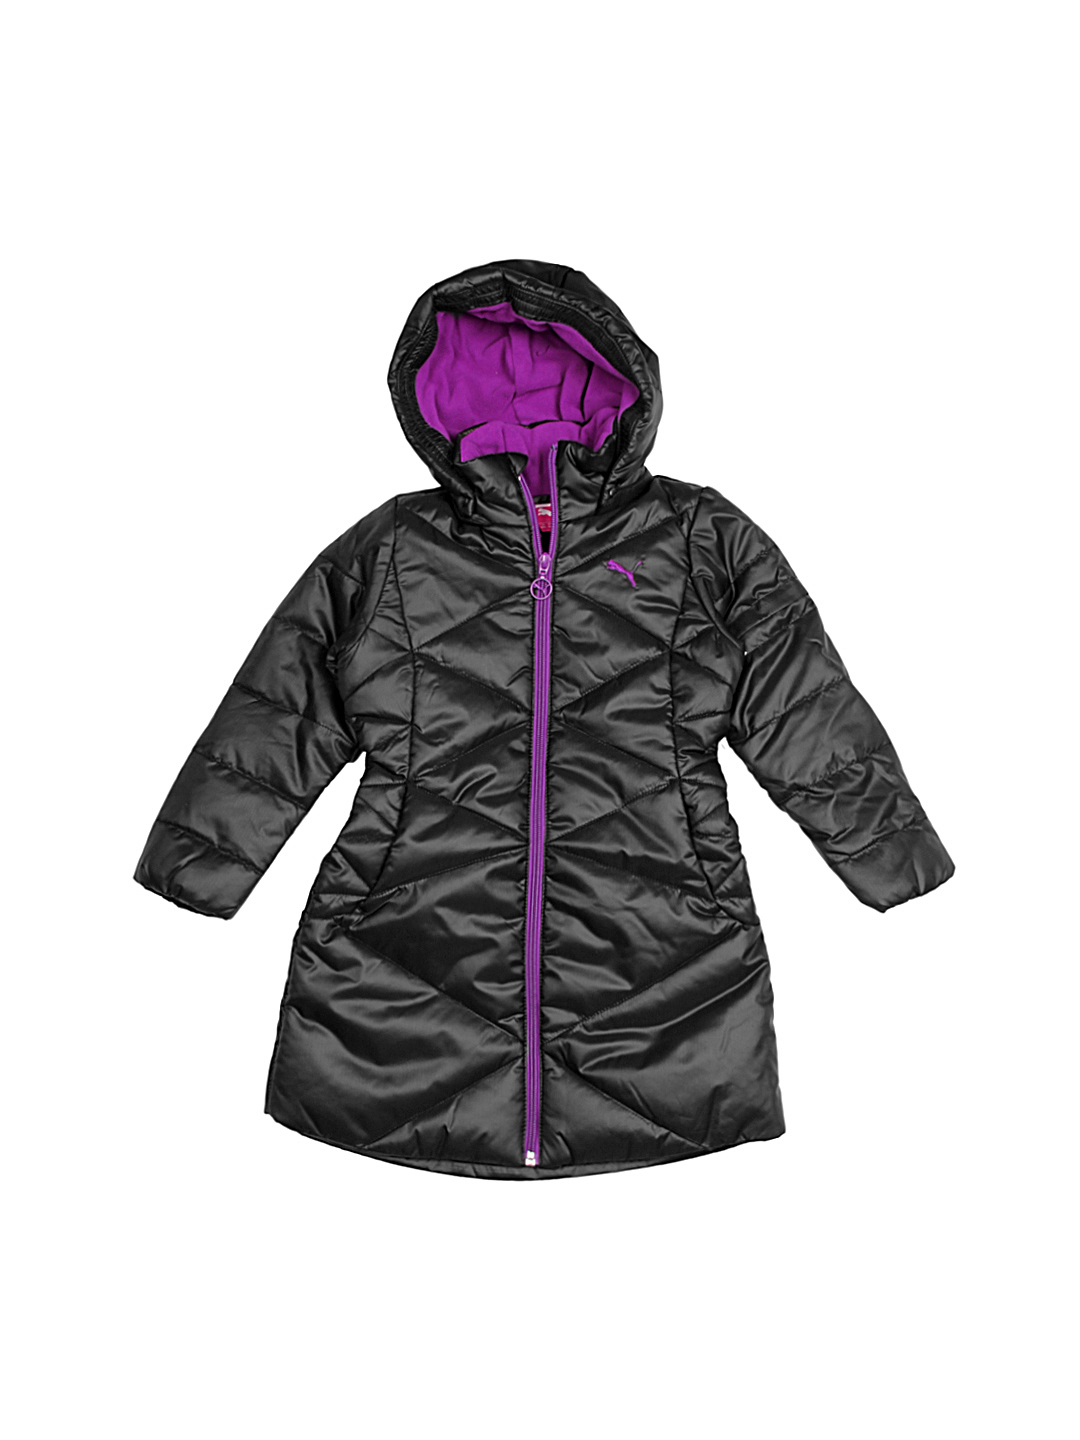 puma girls jacket|puma - Shoes, Clothes & Accessories!